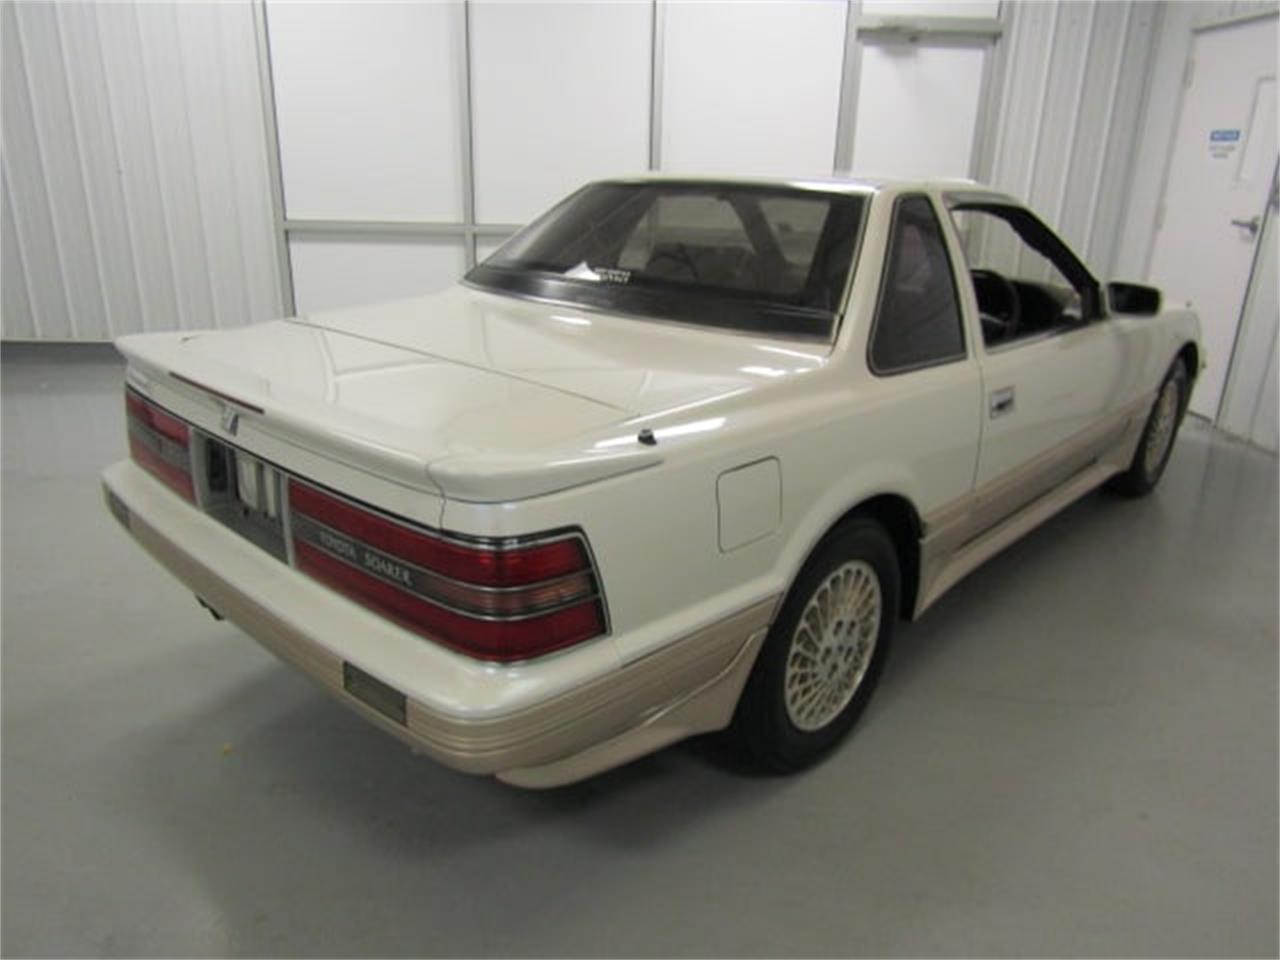 Large Picture of 1989 Toyota Soarer located in Christiansburg Virginia - $12,900.00 - LN7J